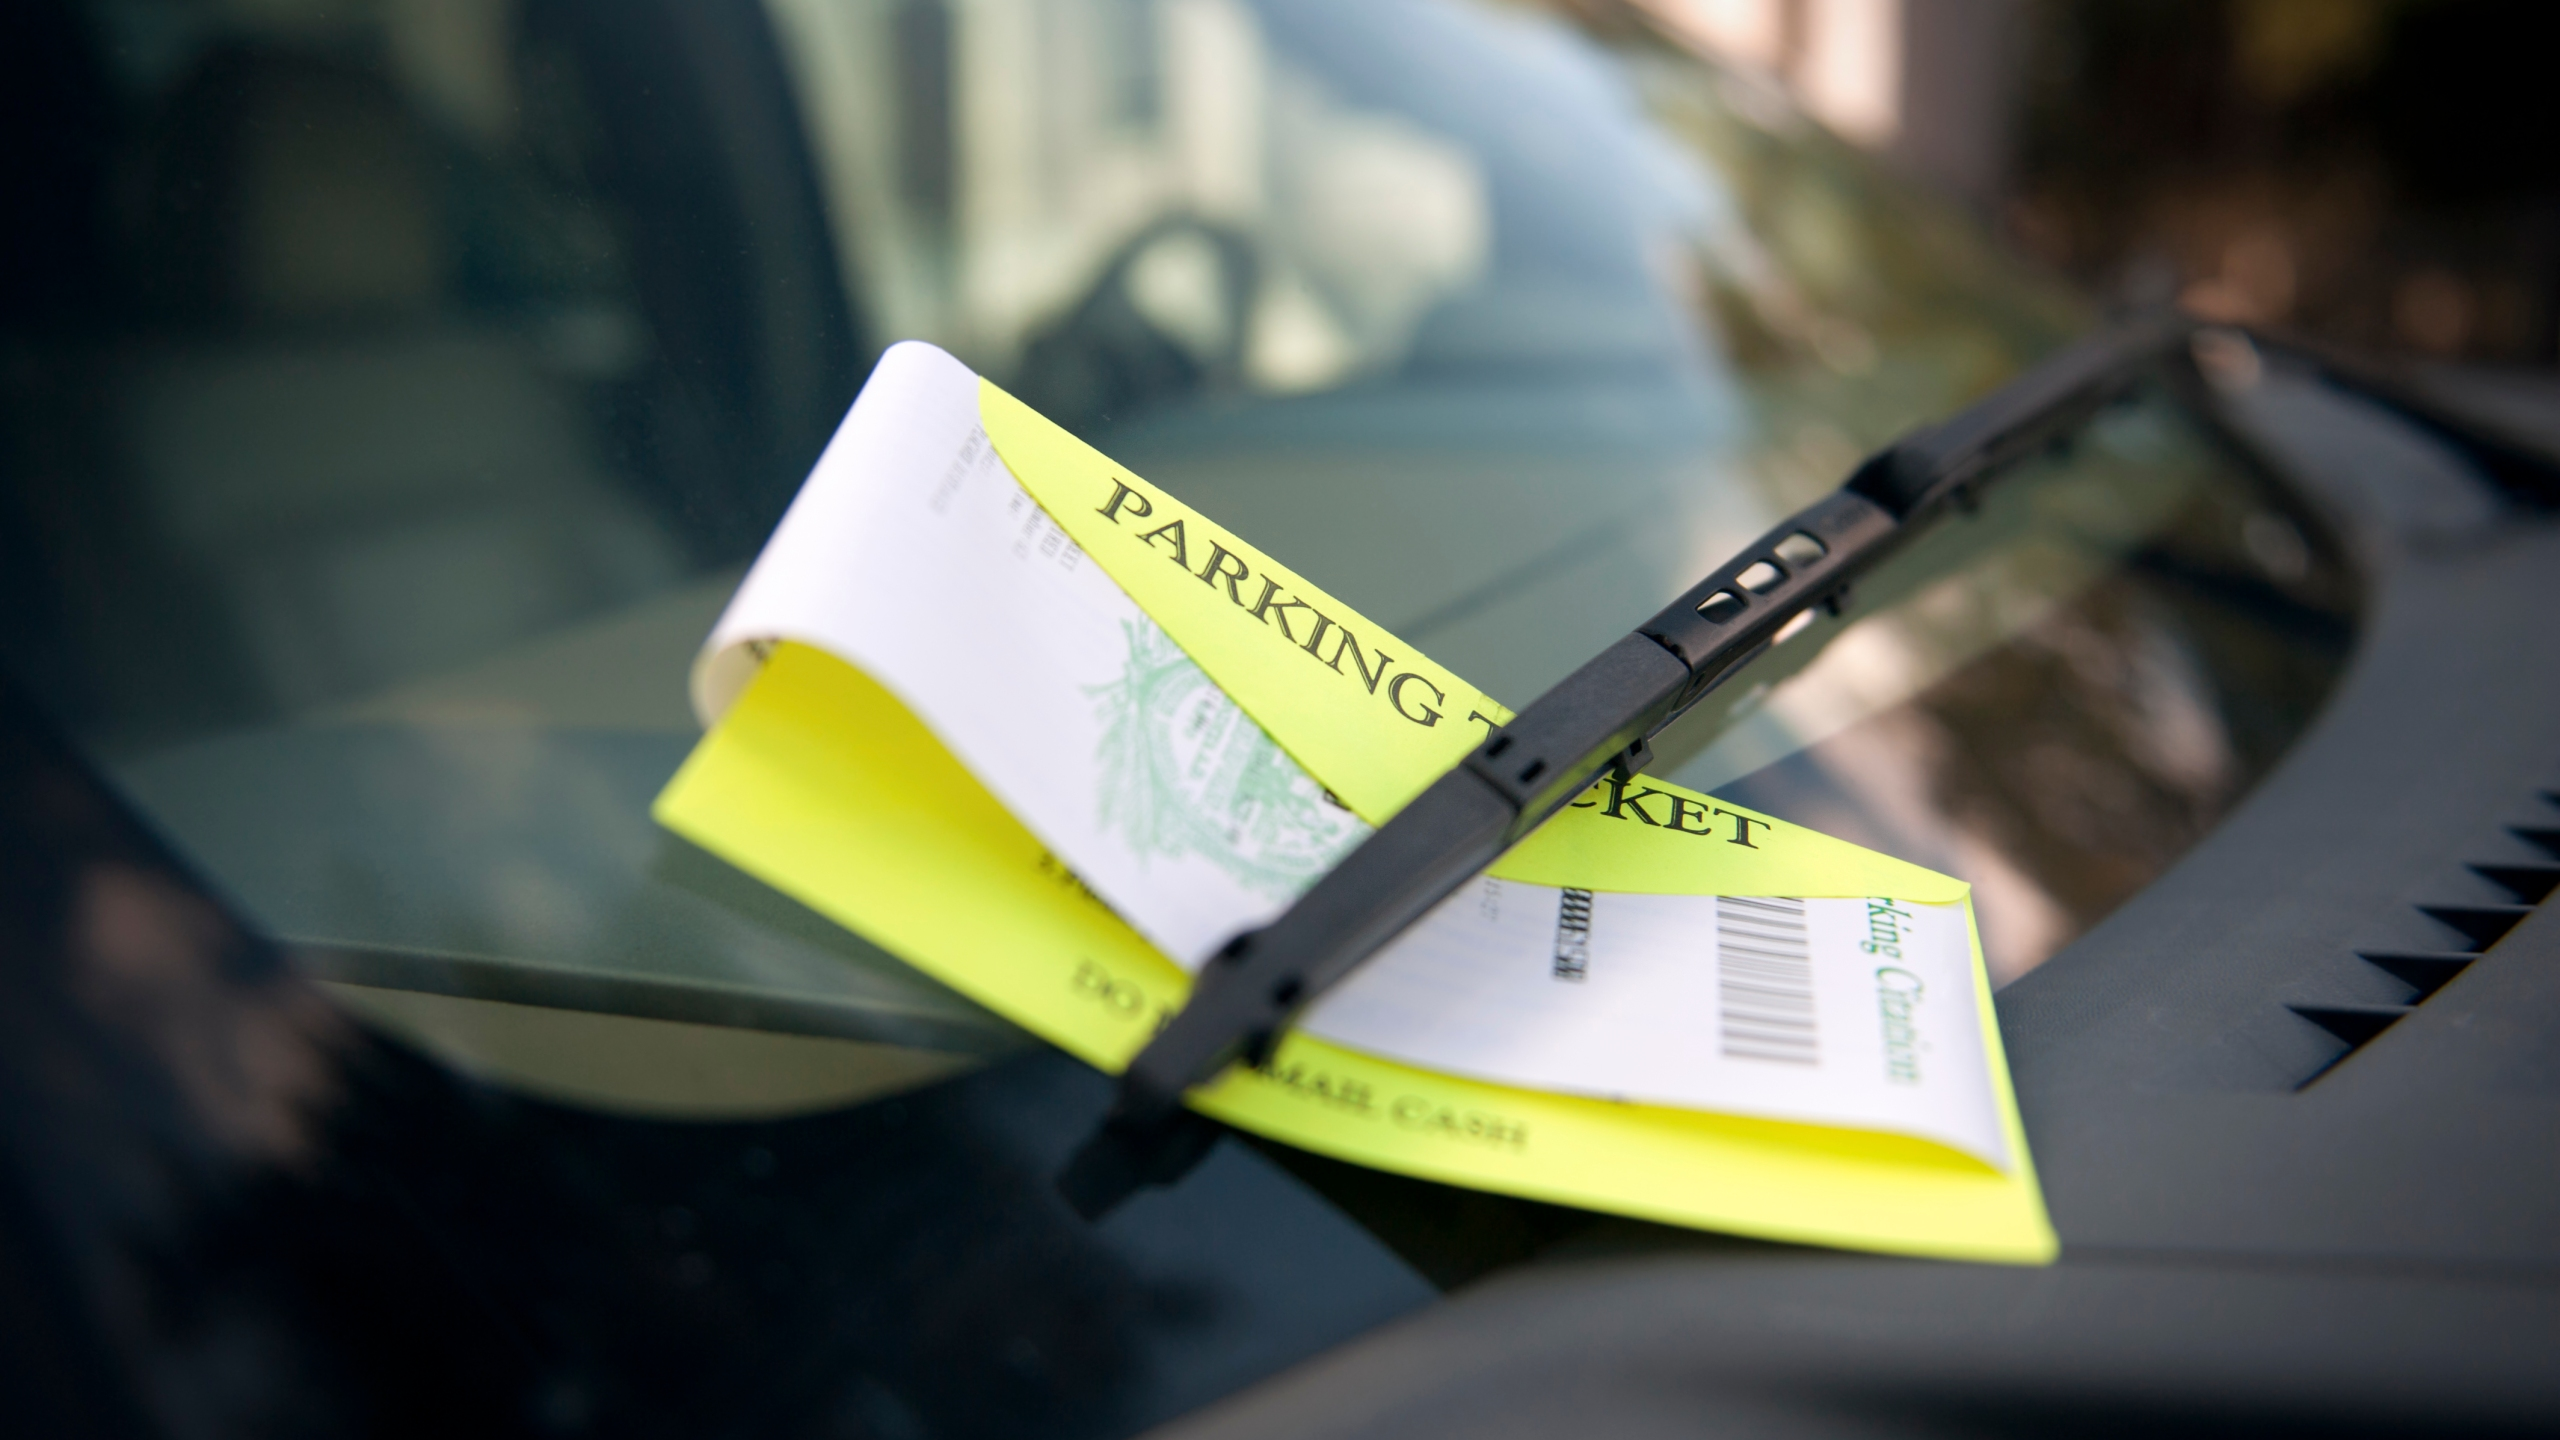 A parking ticket is seen in a file photo. (Credit: iStock / Getty Images Plus)